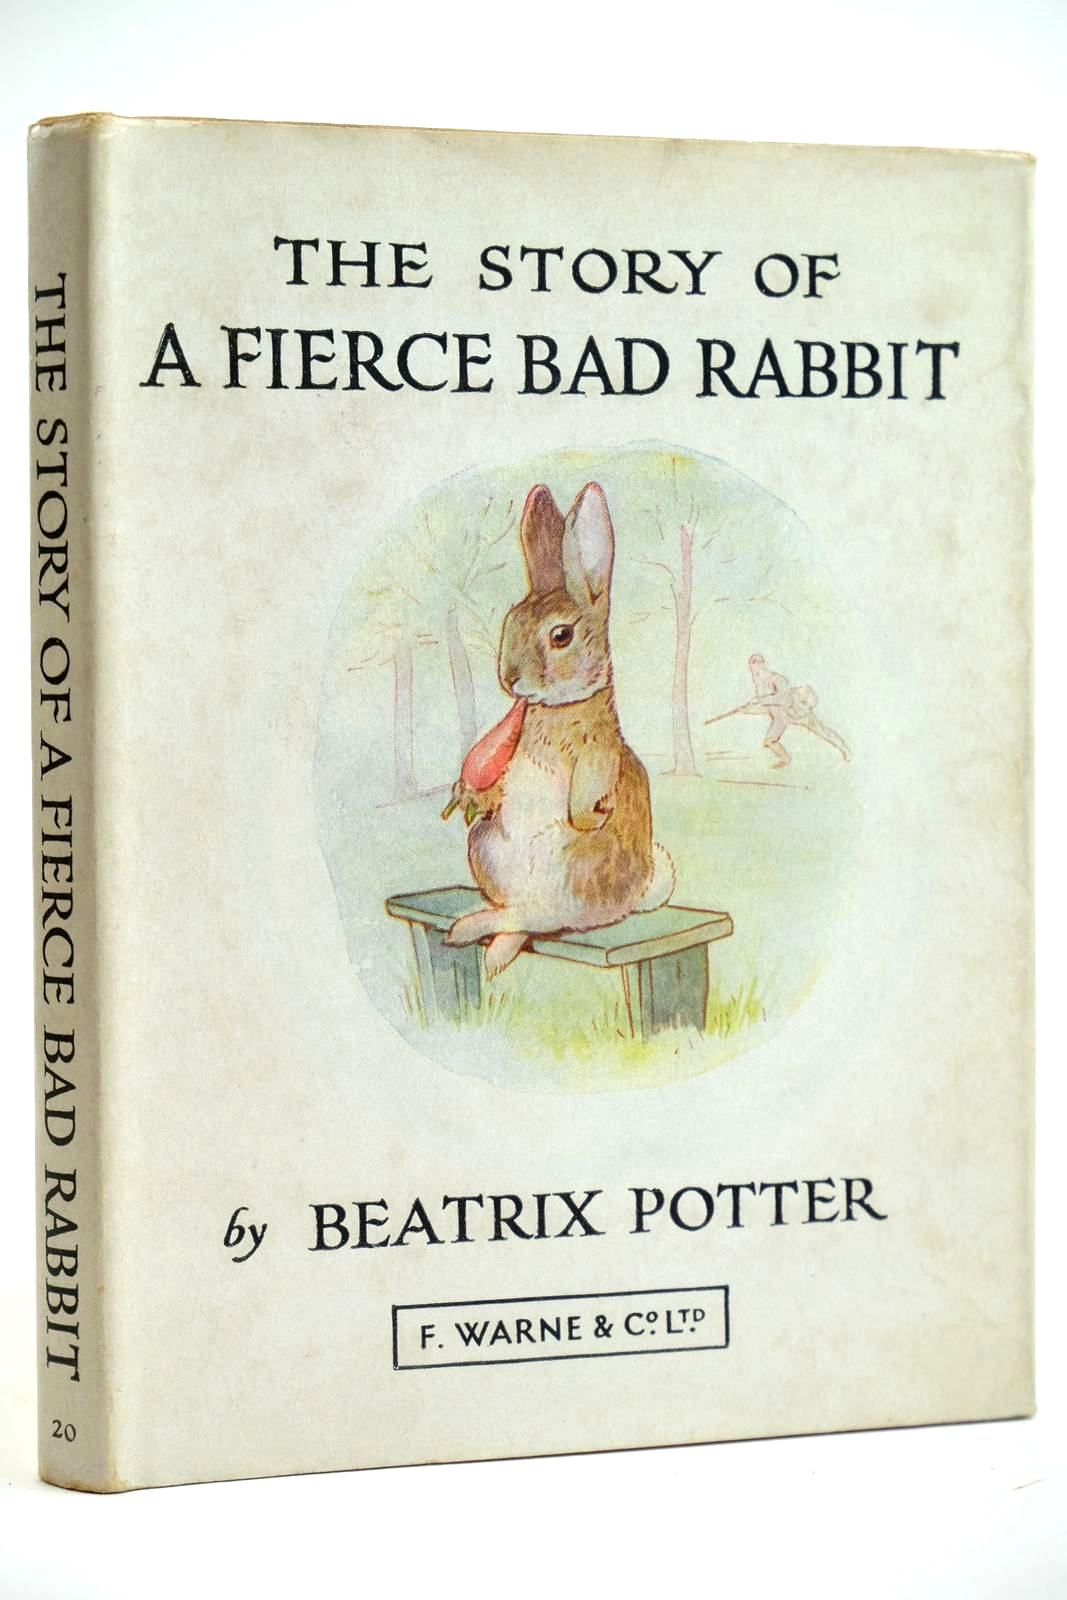 Photo of THE STORY OF A FIERCE BAD RABBIT written by Potter, Beatrix illustrated by Potter, Beatrix published by Frederick Warne & Co Ltd. (STOCK CODE: 2132072)  for sale by Stella & Rose's Books